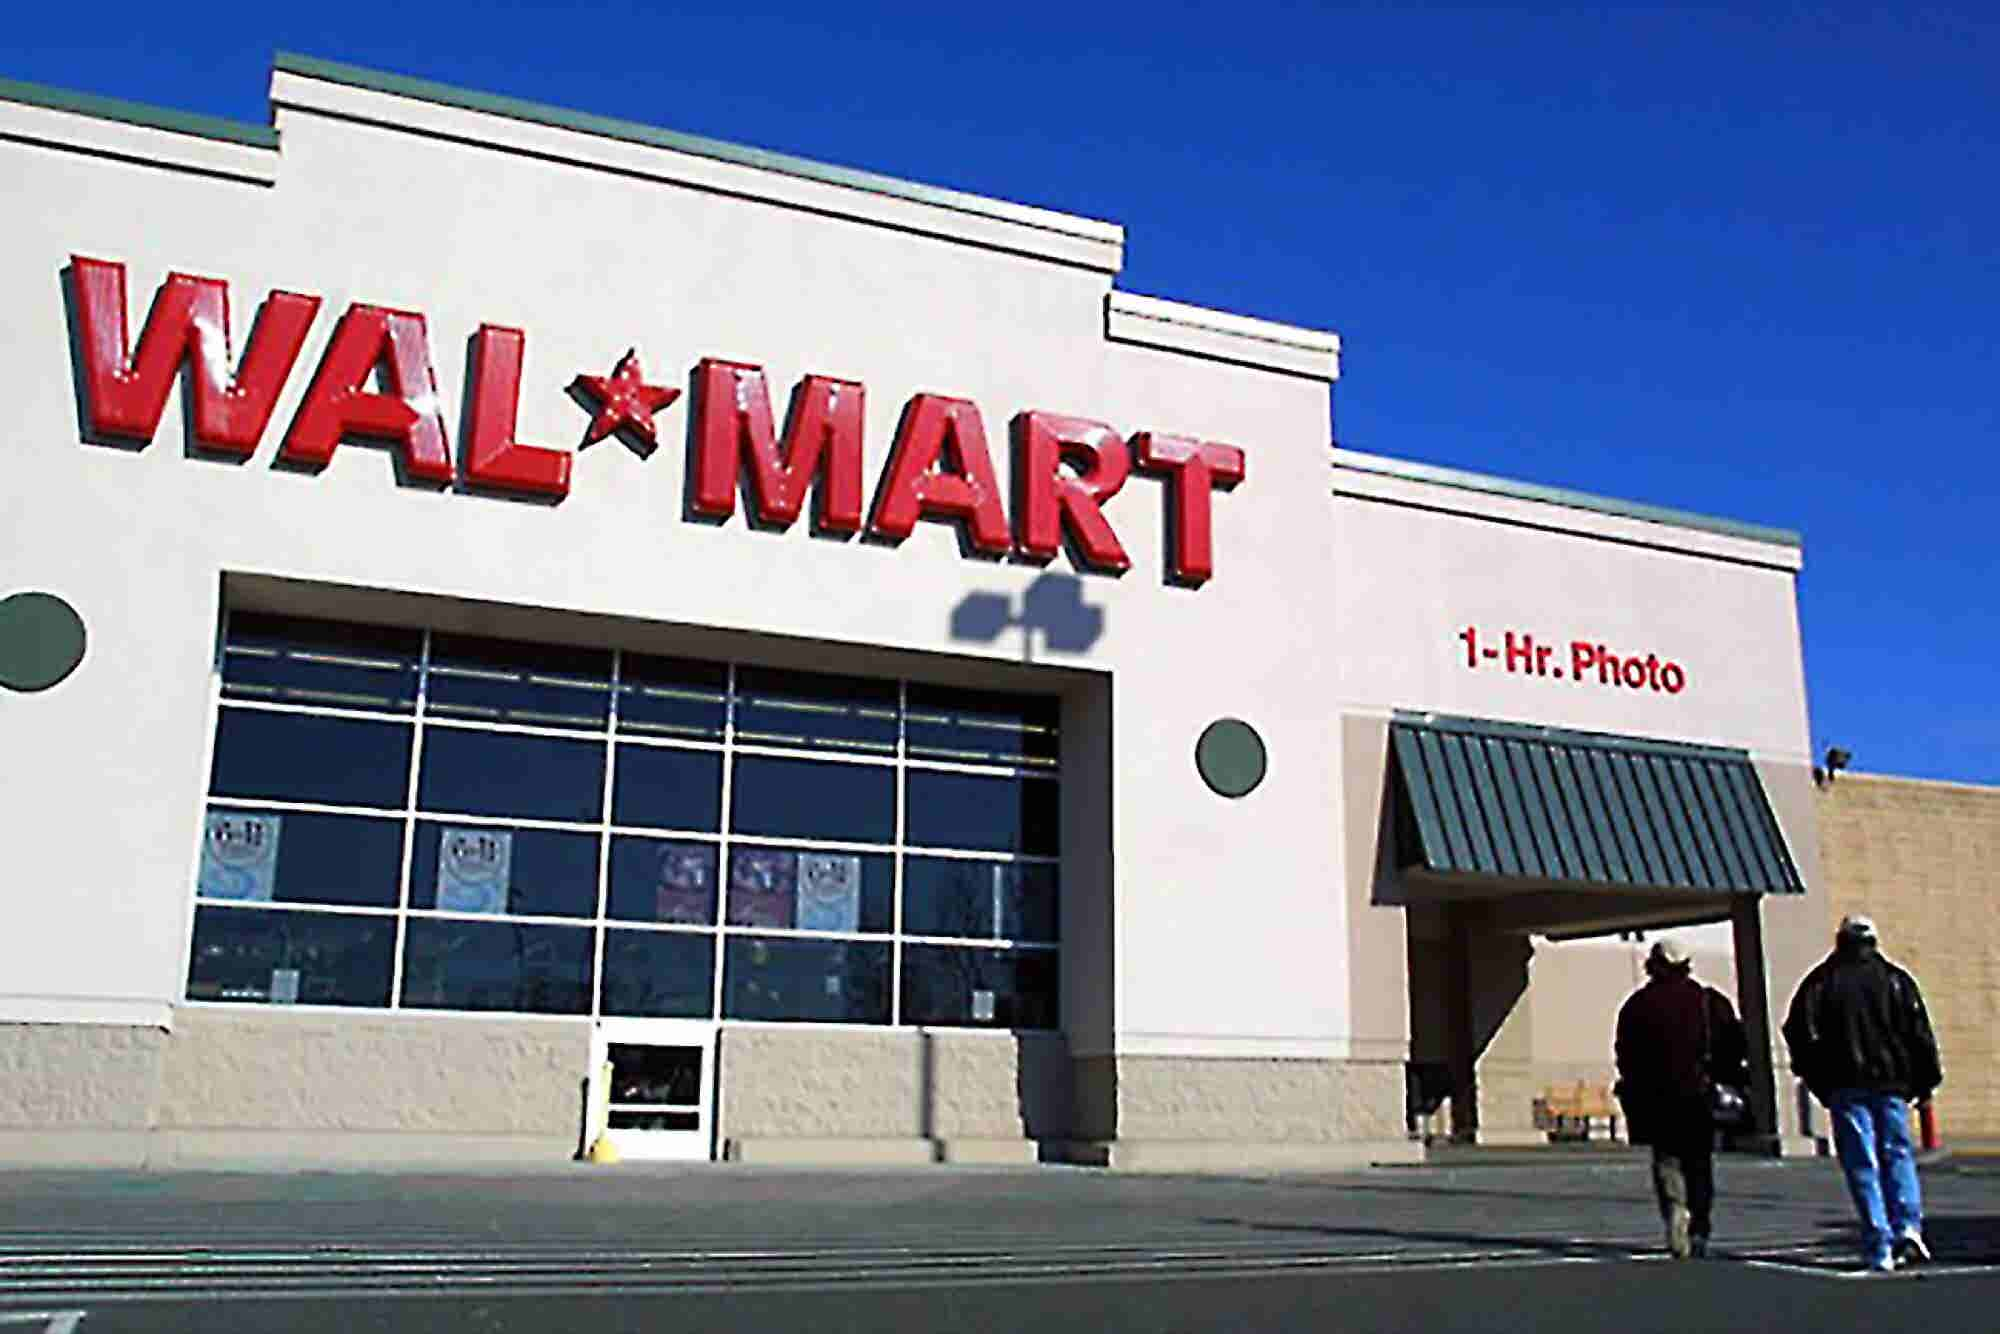 Wal-Mart to Buy Jet.com for About $3.3 Billion